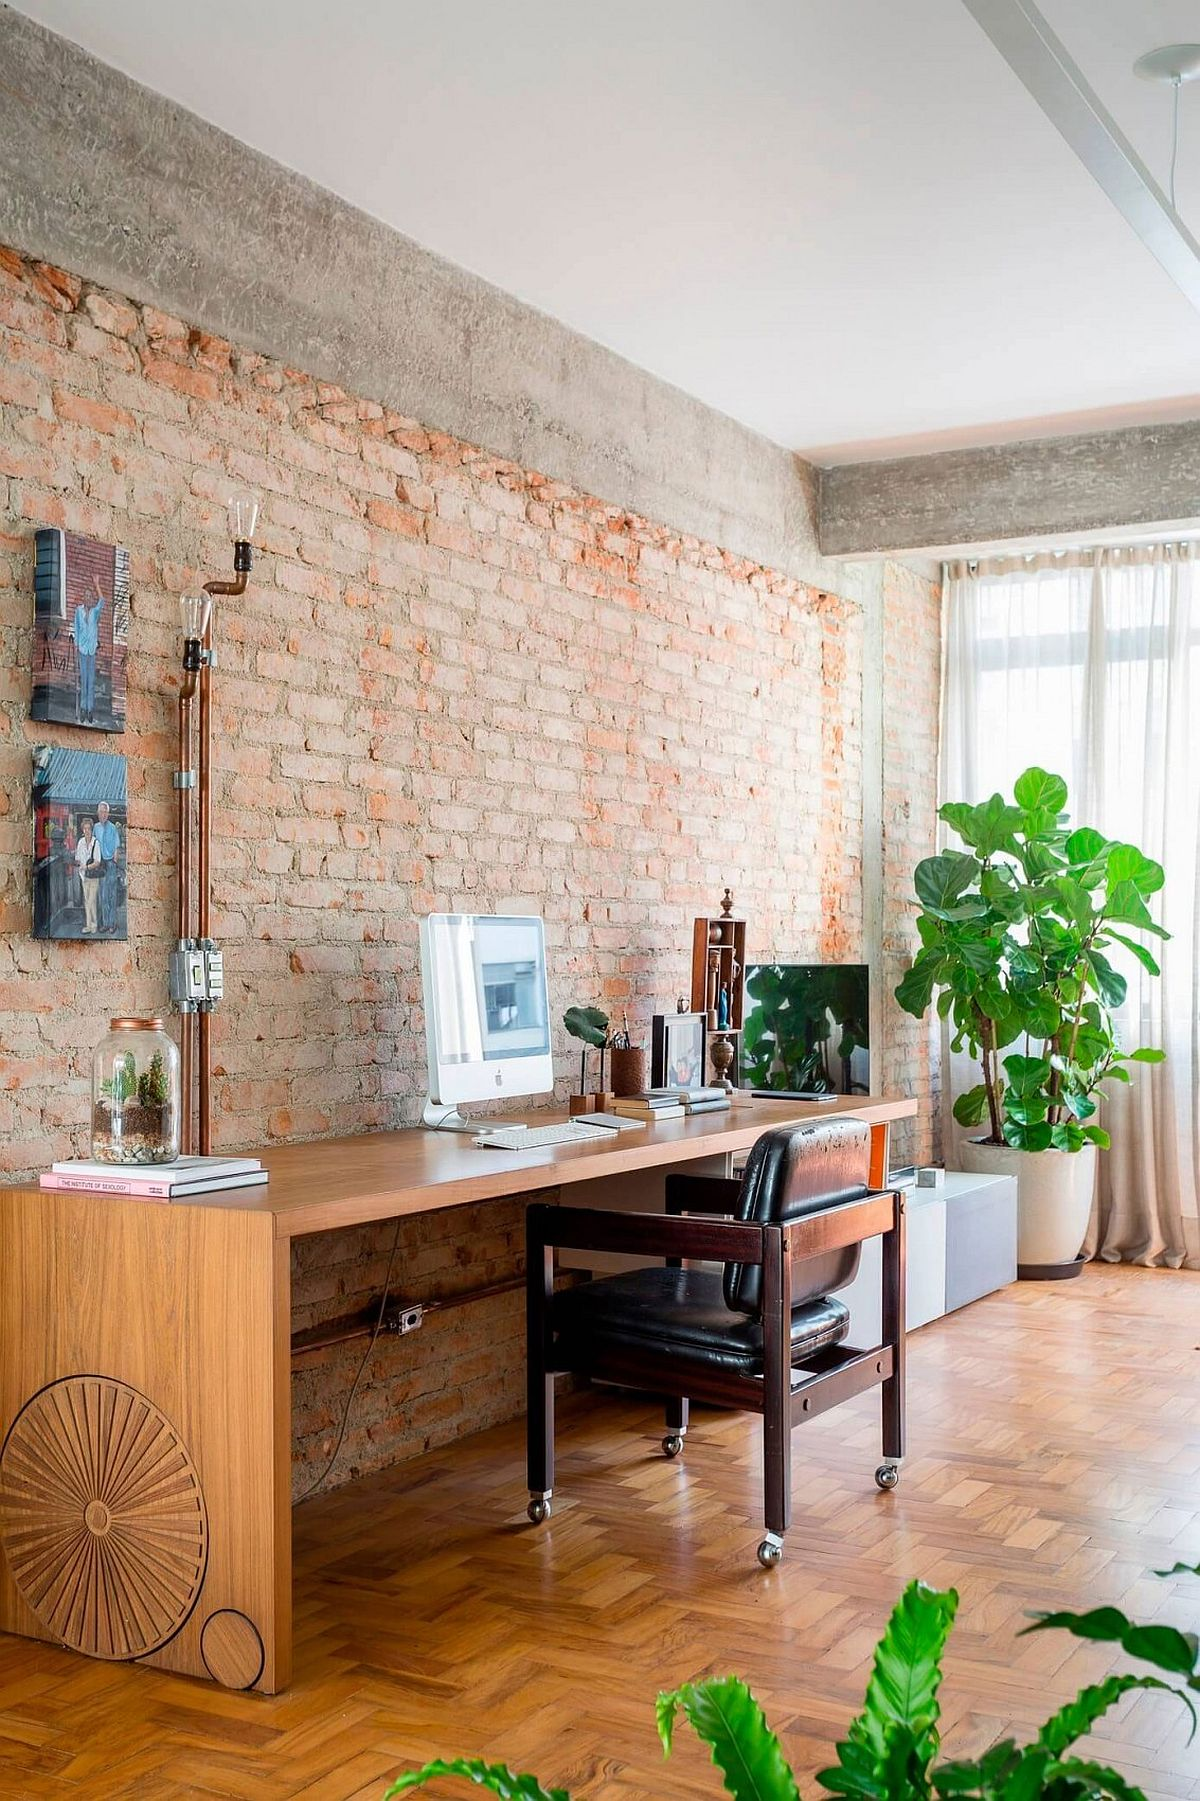 Spacious home workspace with brick walls